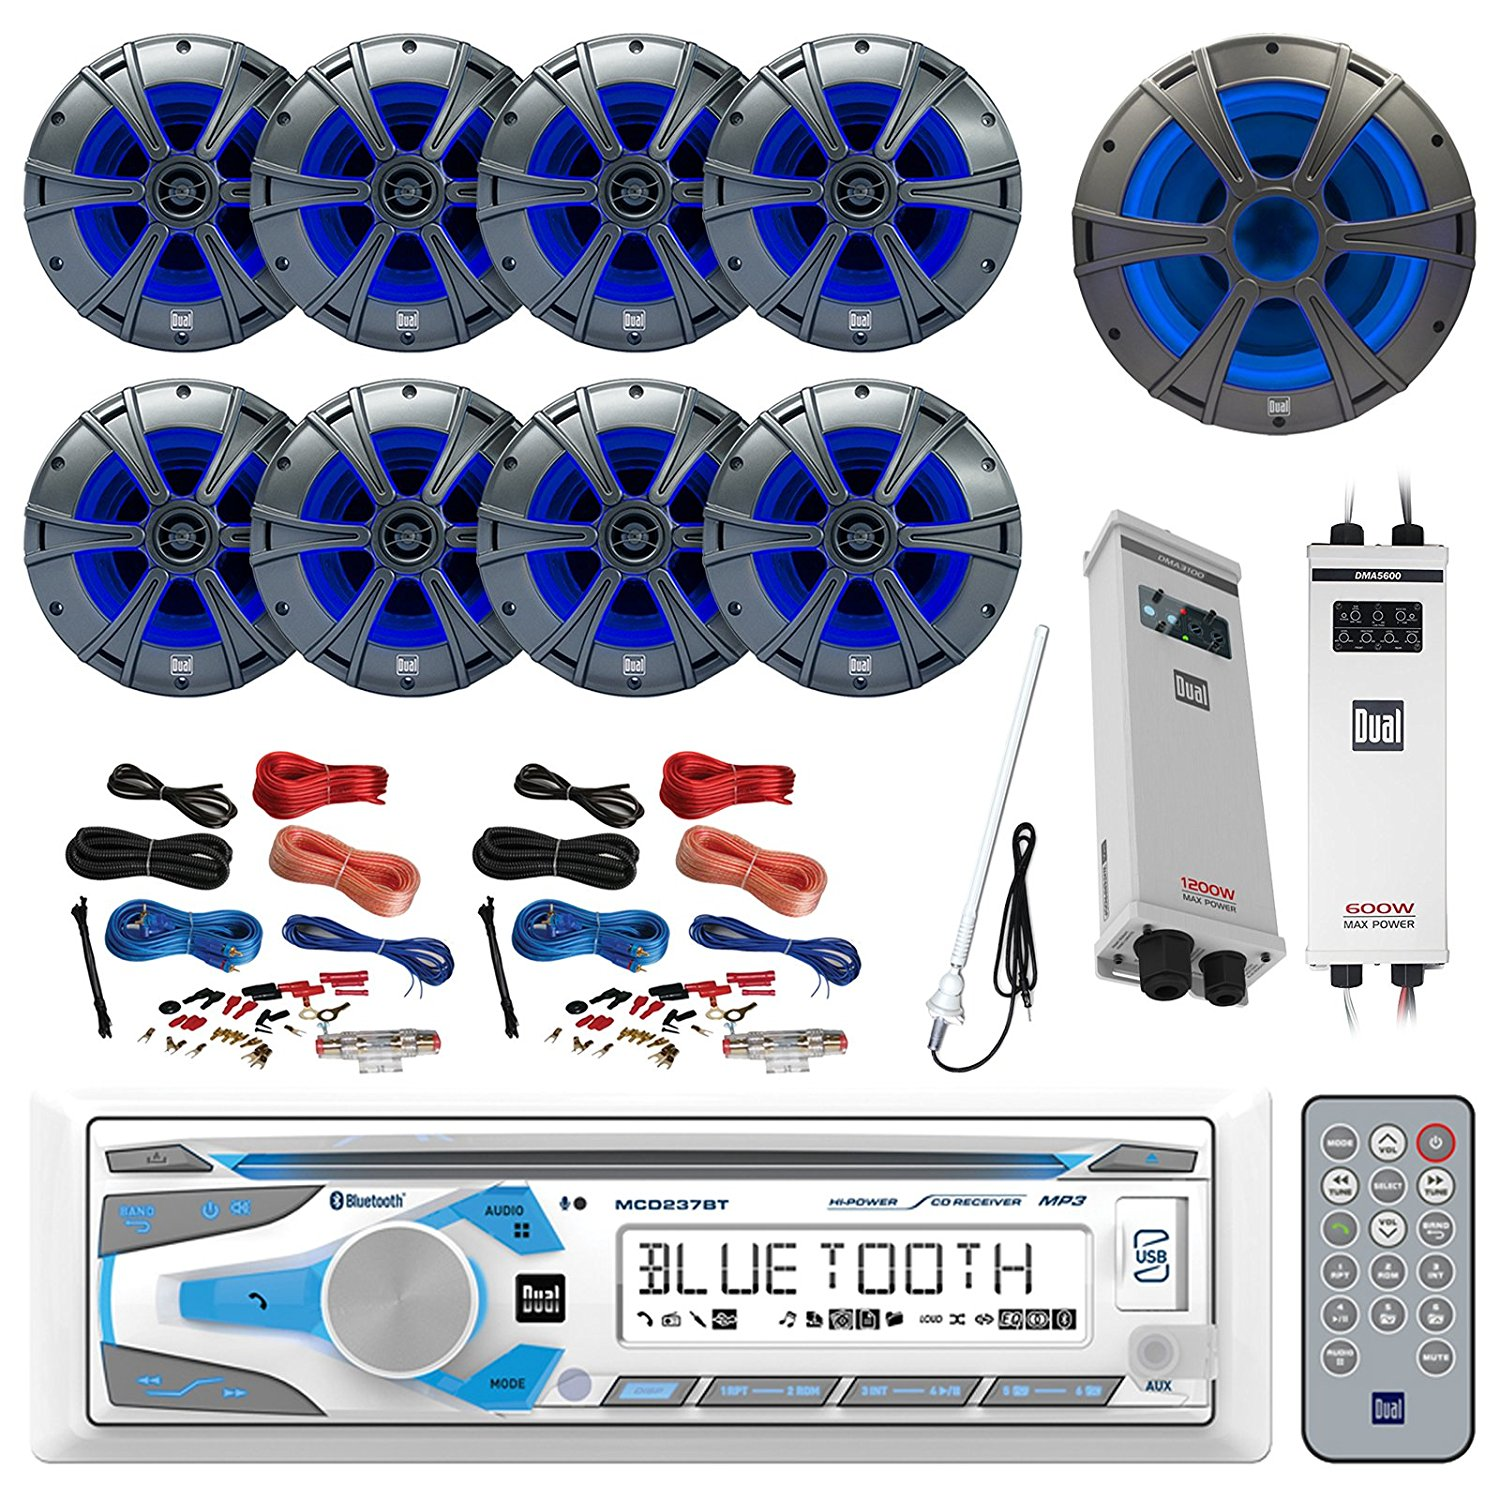 Cheap 600 Watt 2 Channel Amp Find Deals On Wiring Get Quotations Boat Package Dual Single Din Marine Cd Am Fm Bluetooth Receiver 8